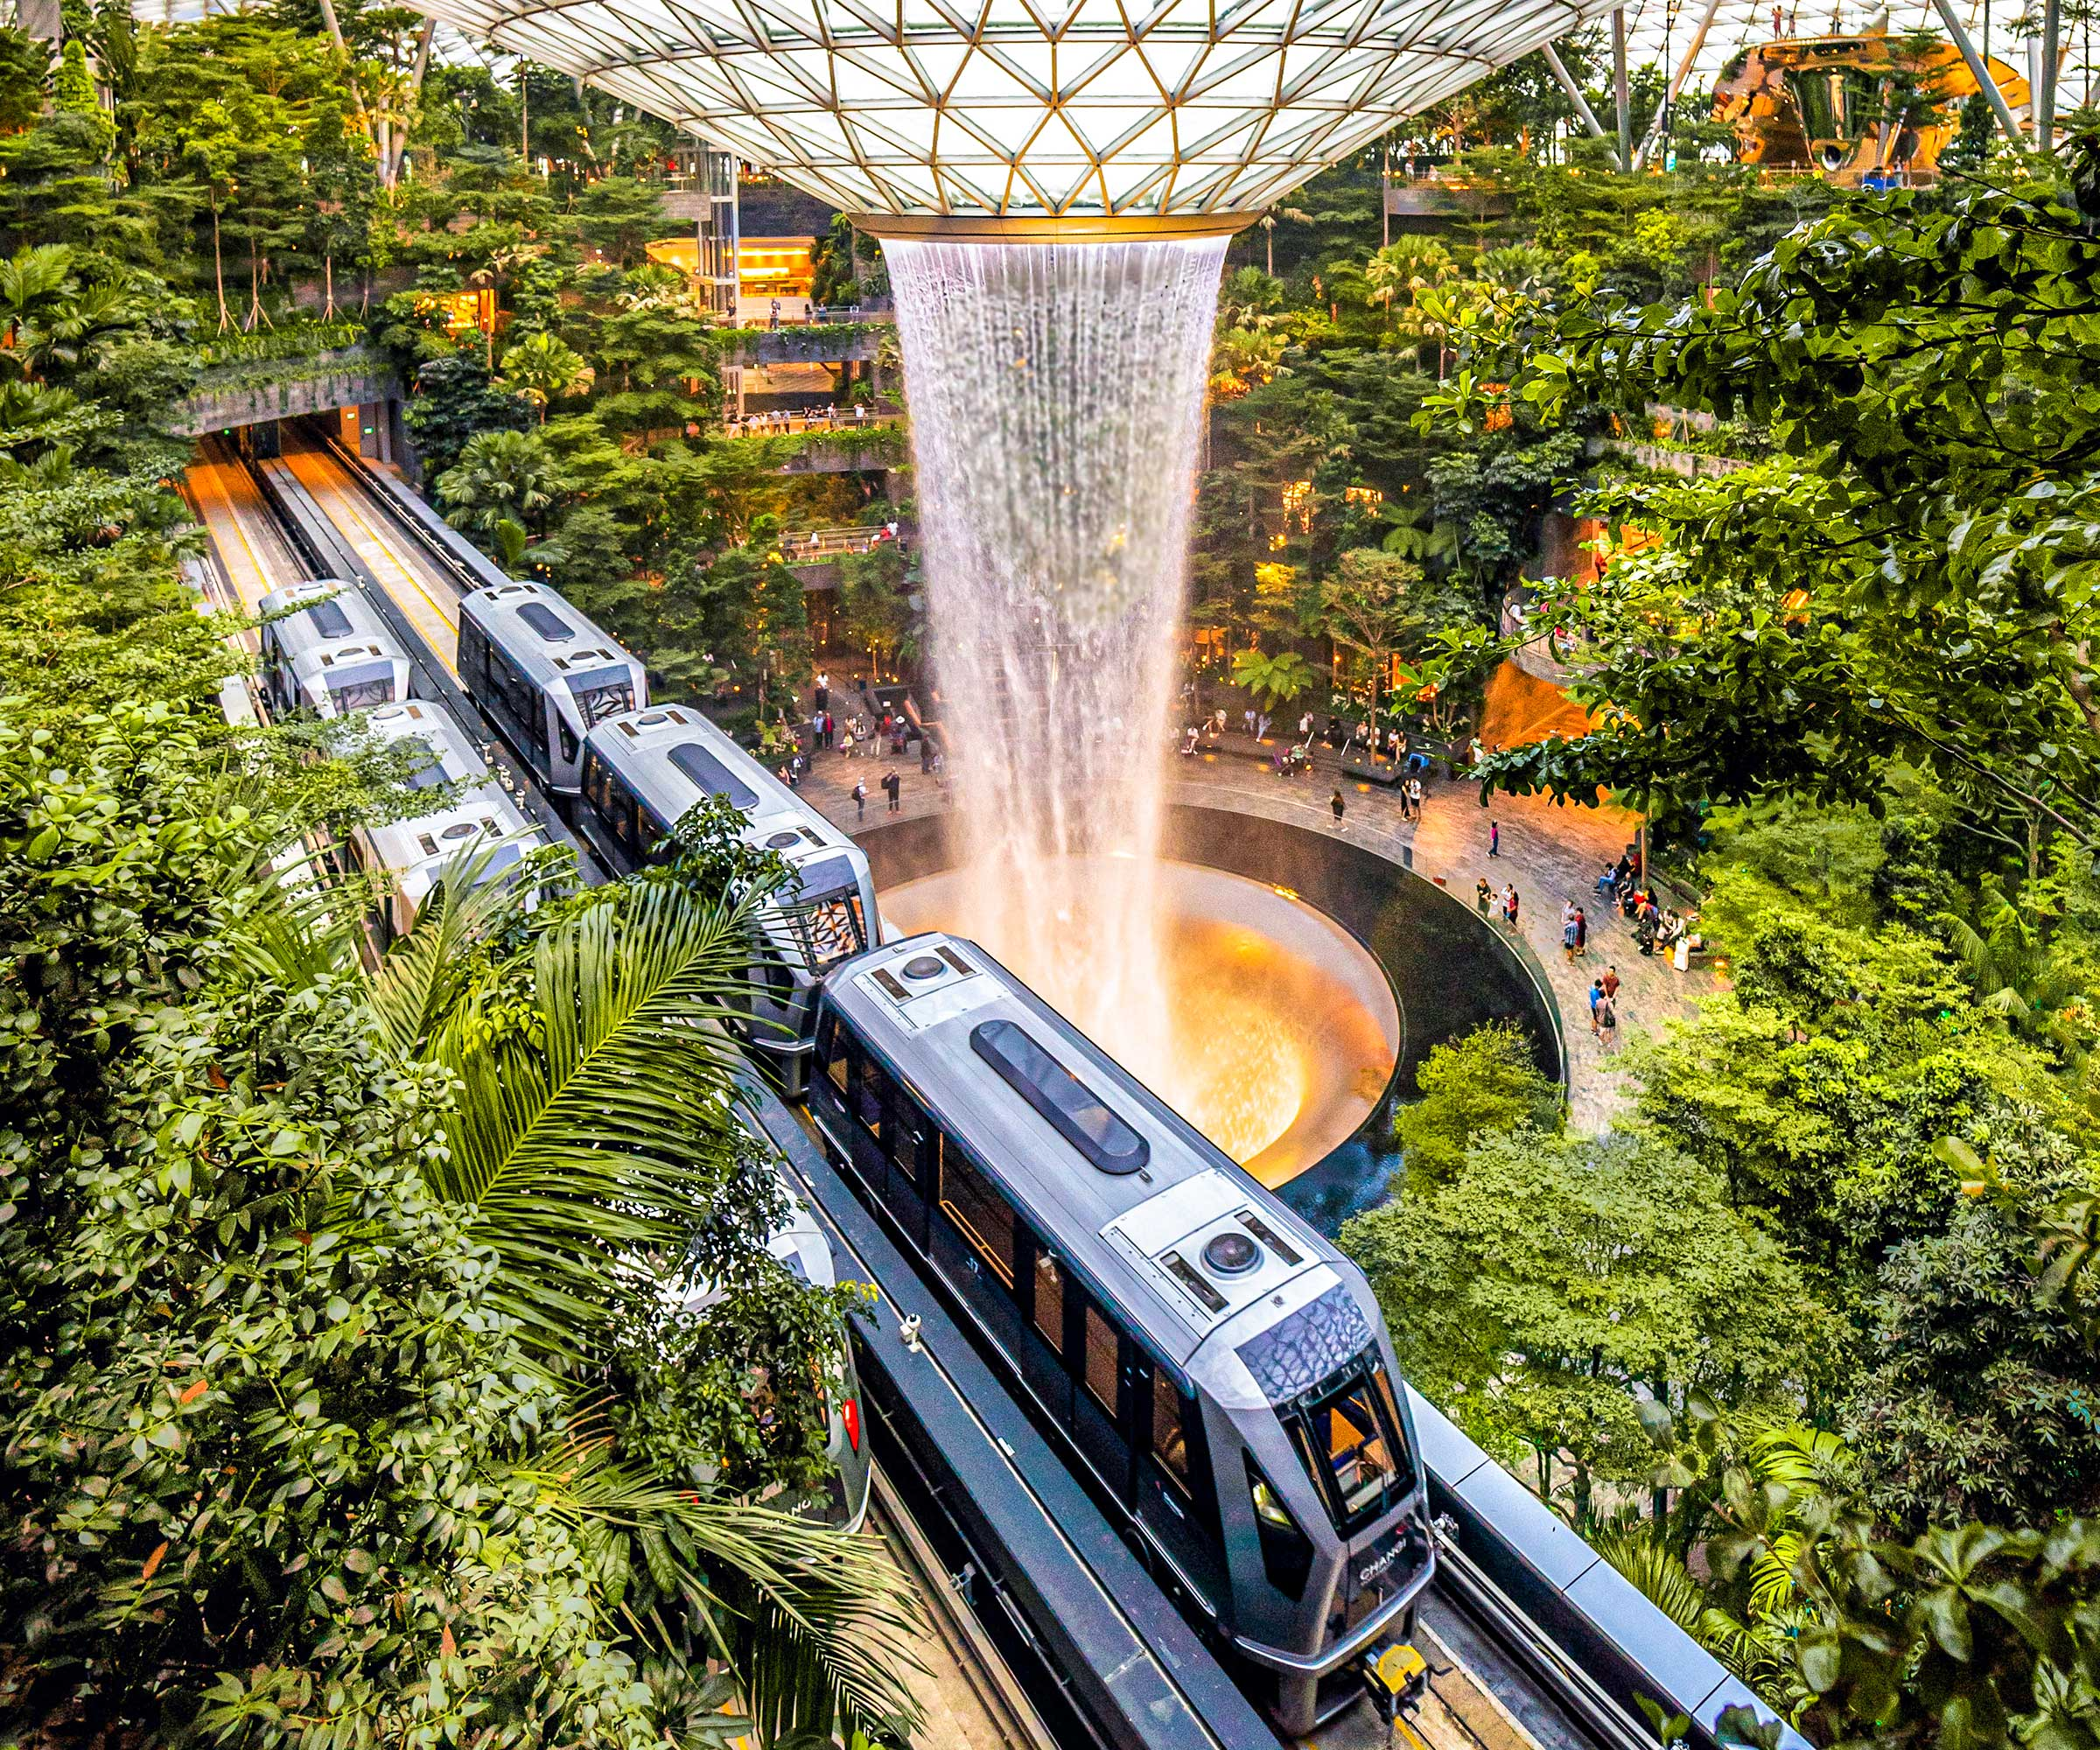 Jewel Changi Airport services Singapore. ©Jordi Sark